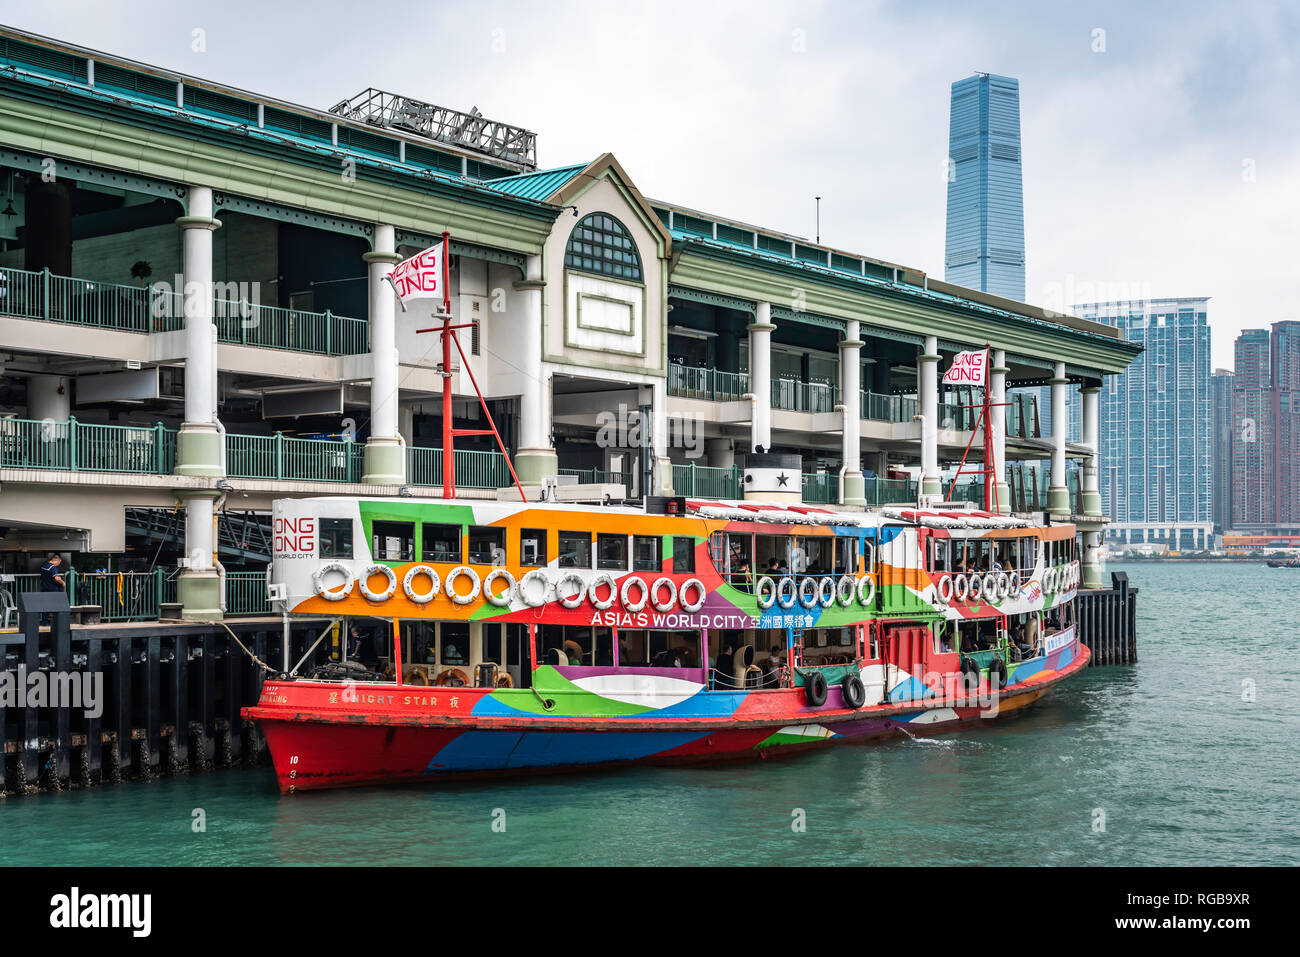 The Star Ferry terminal in Central, Hong Kong, China, Asia. - Stock Image